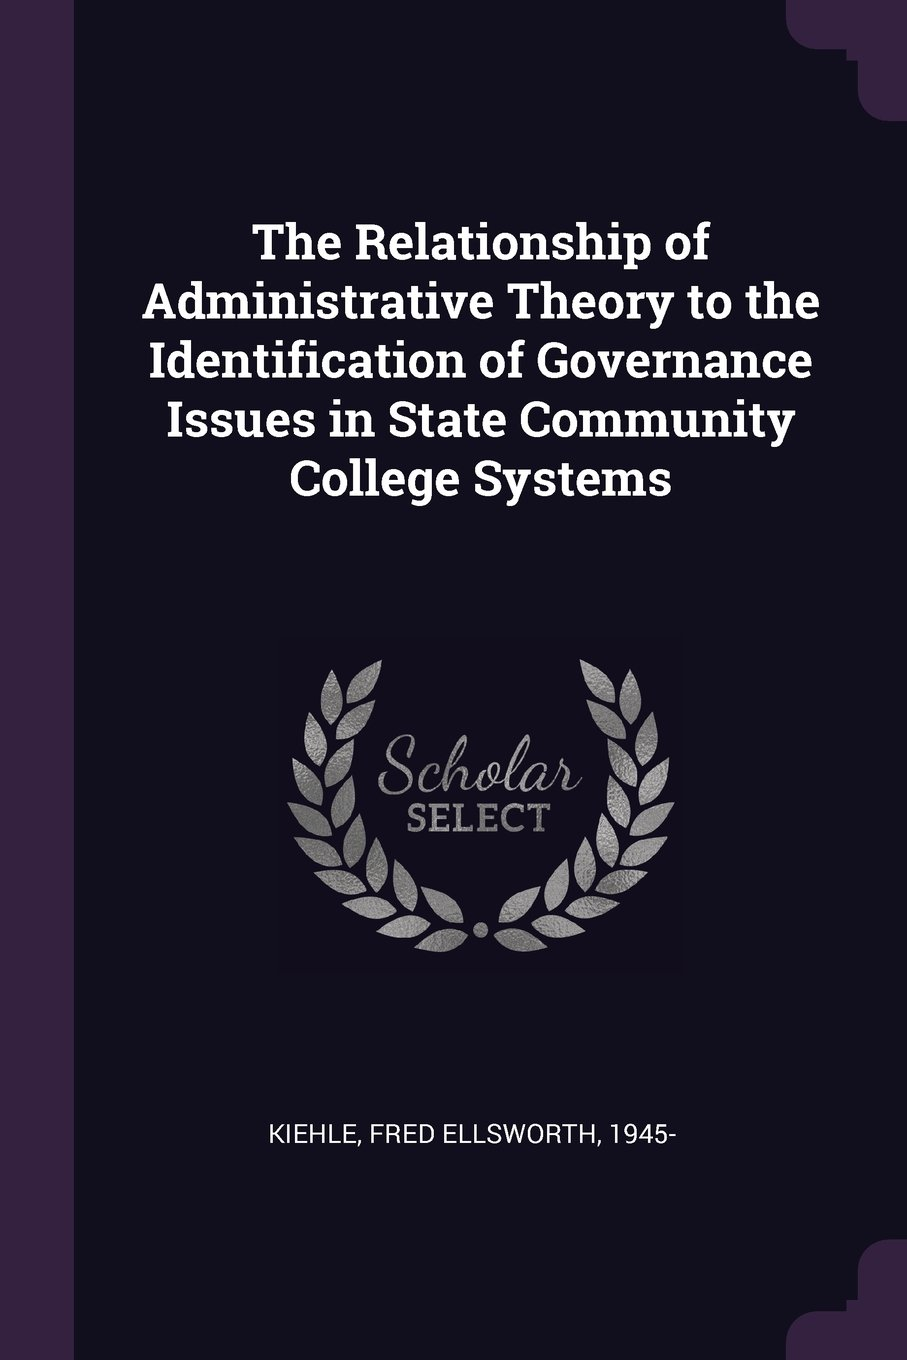 Download The Relationship of Administrative Theory to the Identification of Governance Issues in State Community College Systems ebook